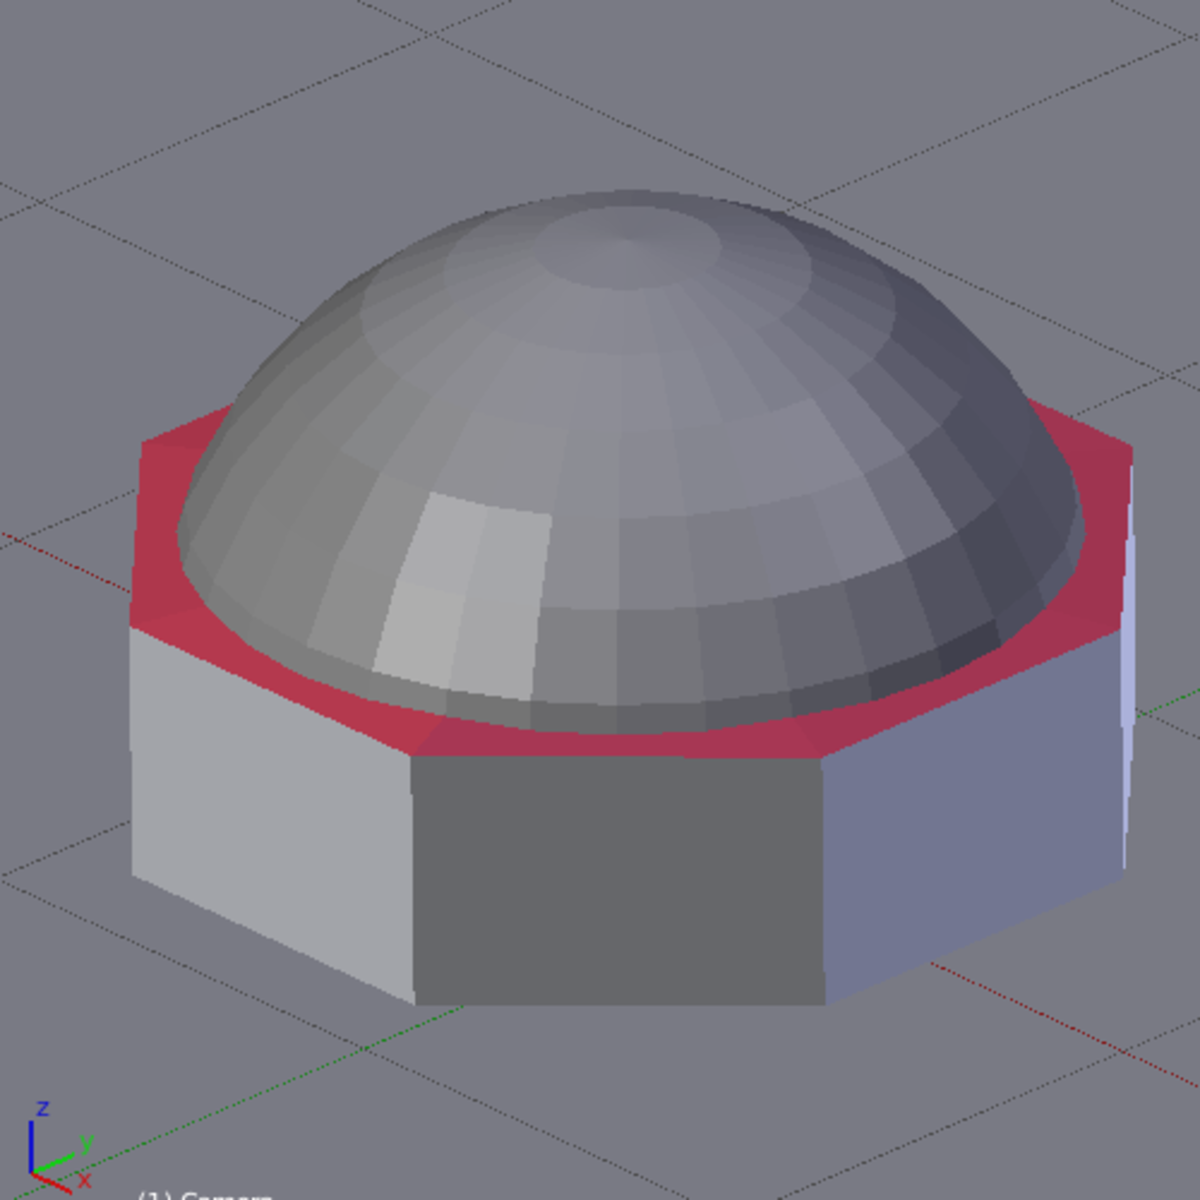 Figure E: The finished dome.